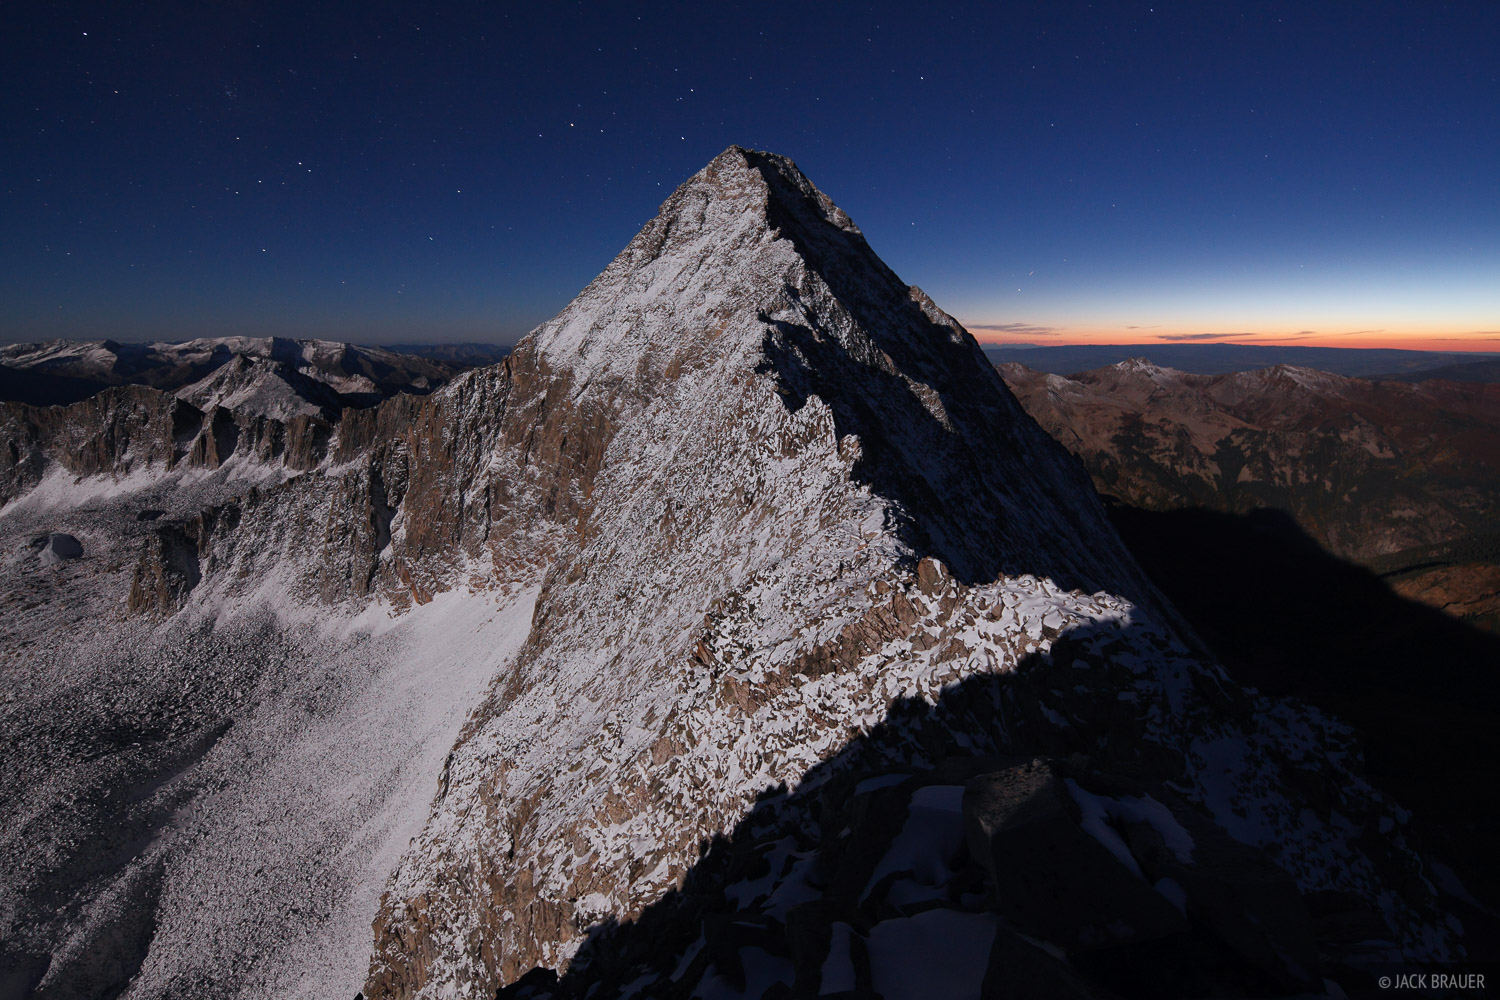 Capitol Peak, Elk Mountains, Colorado, moonlight, Maroon Bells-Snowmass Wilderness, photo